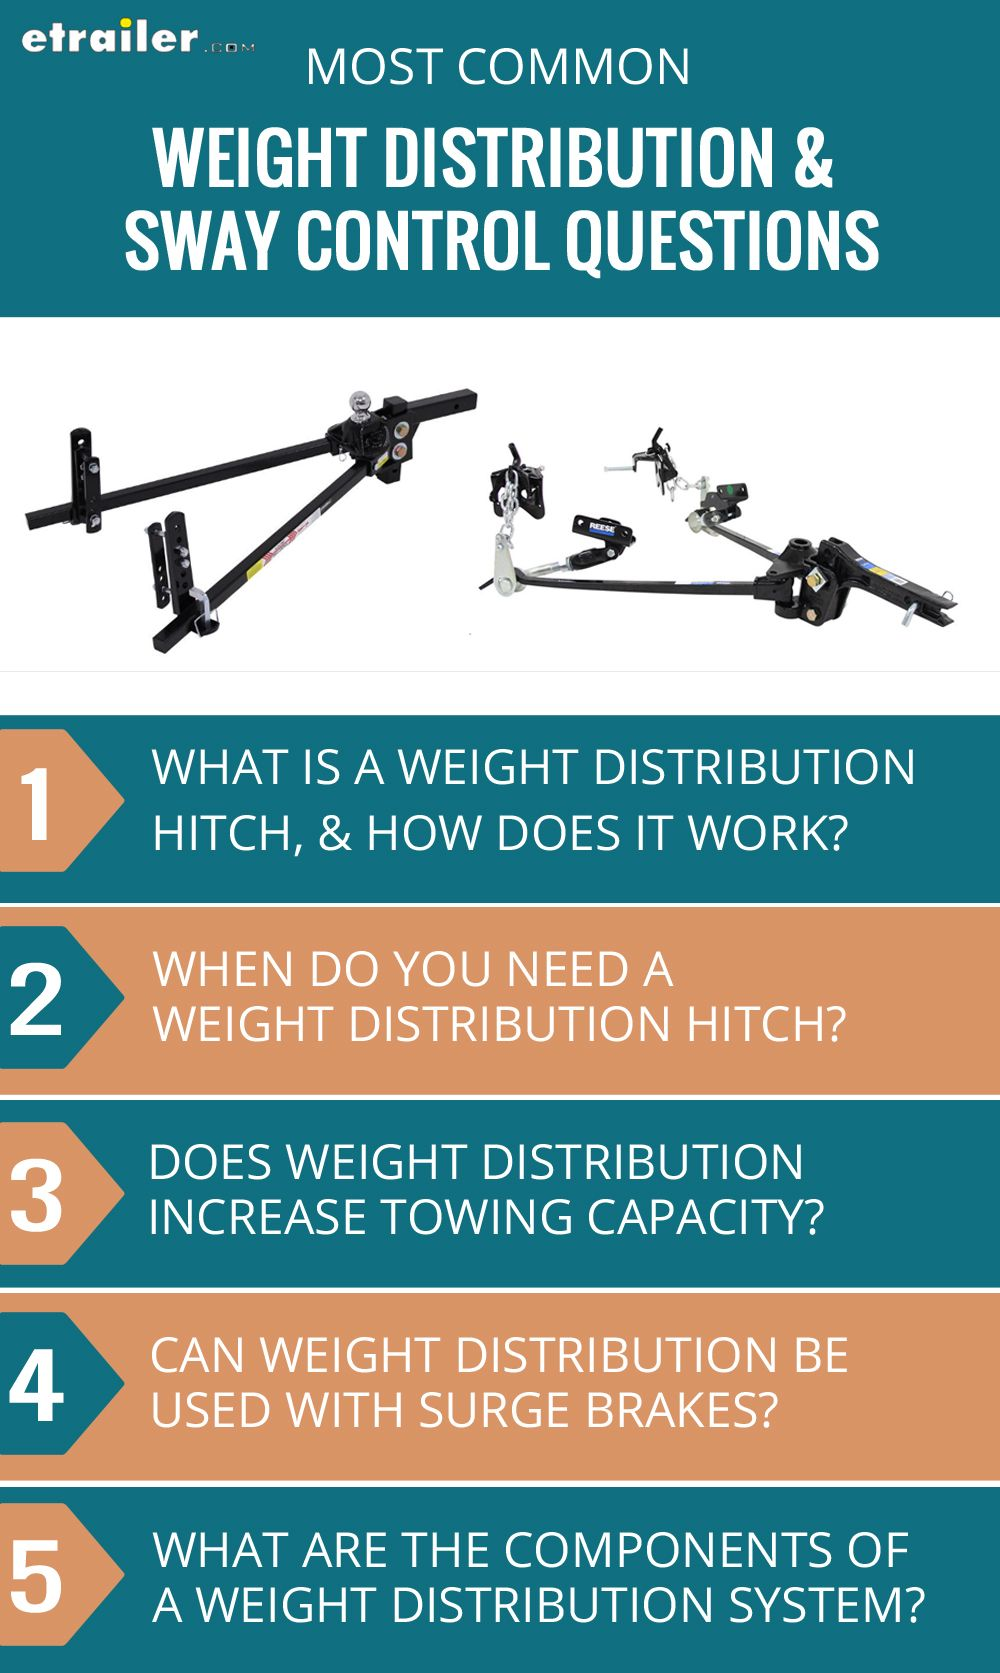 What is a weight distribution hitch, and how do you know